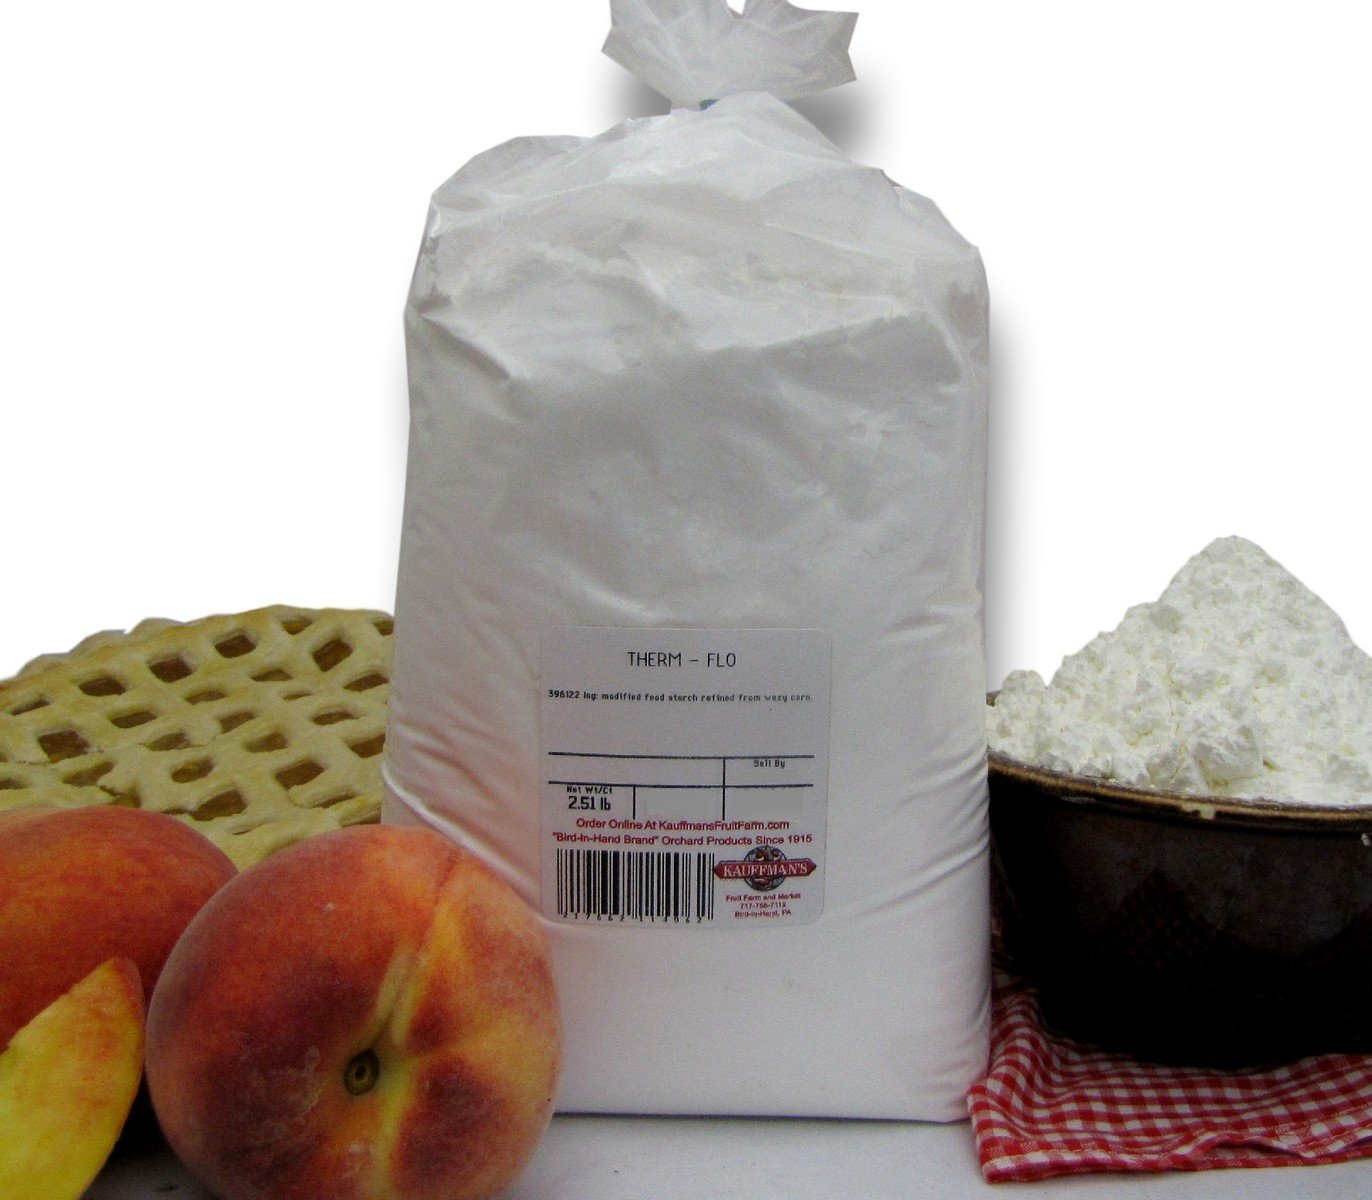 Therm Flo Canning Thickener, Bulk 2.5 Lb. Bag